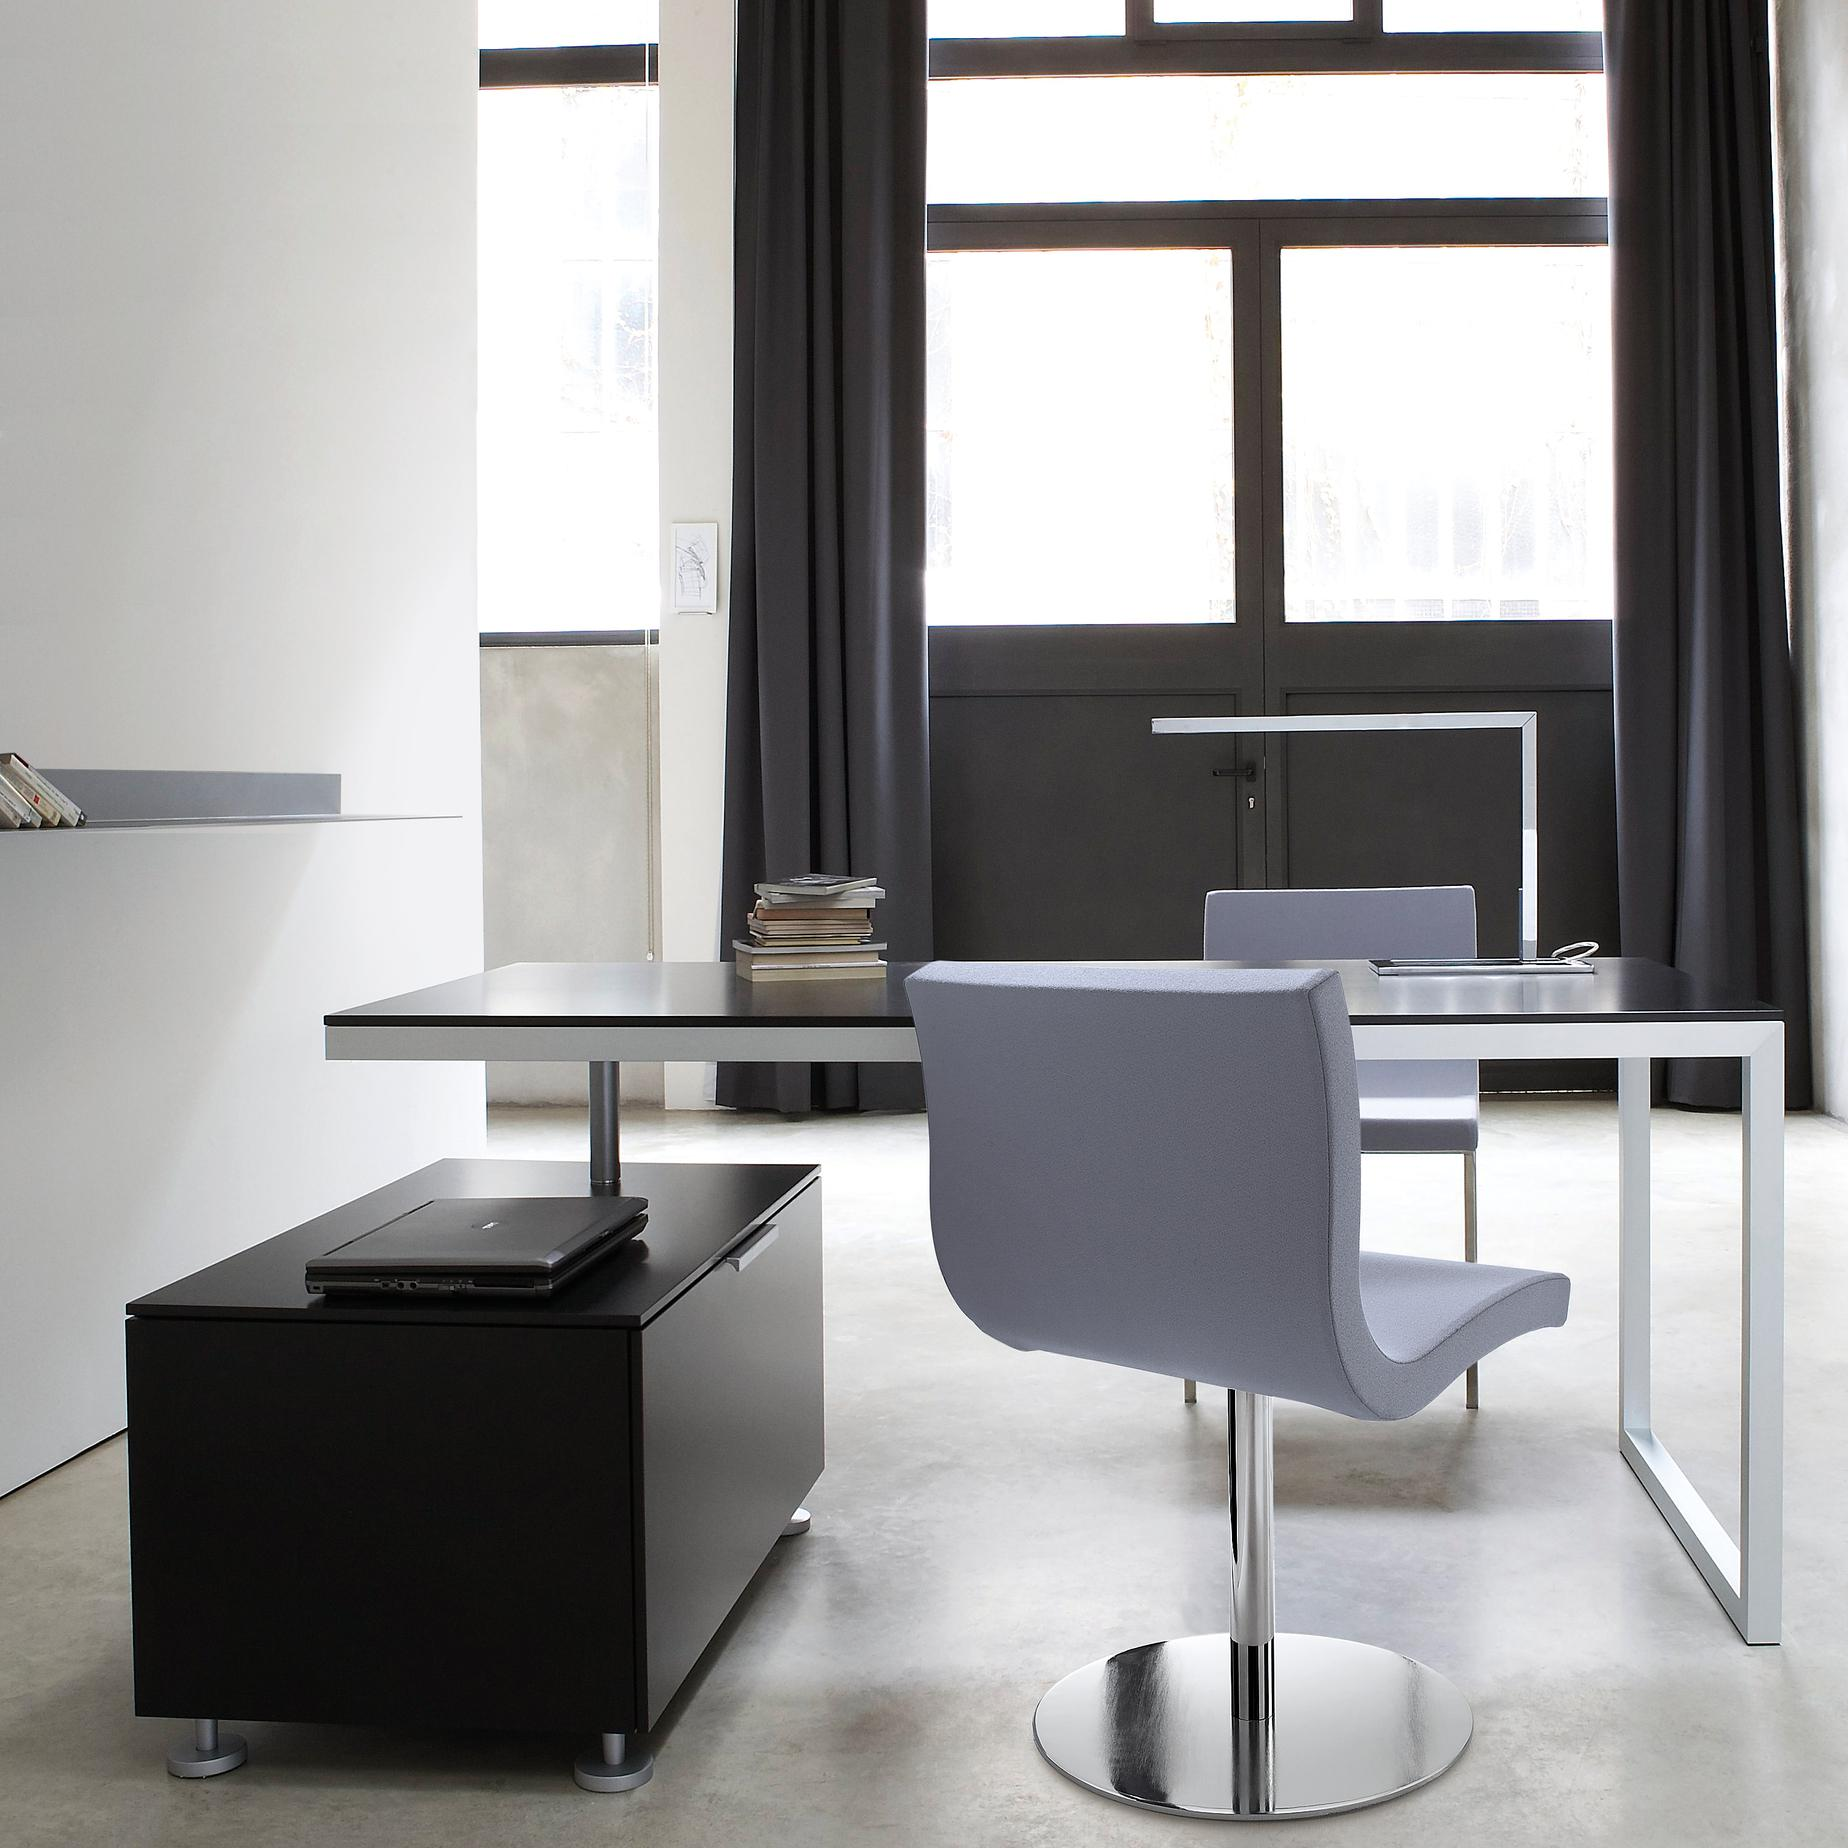 Everywhere Desks Secretaires Designer Christian Werner  # Muebles Full House Bogota